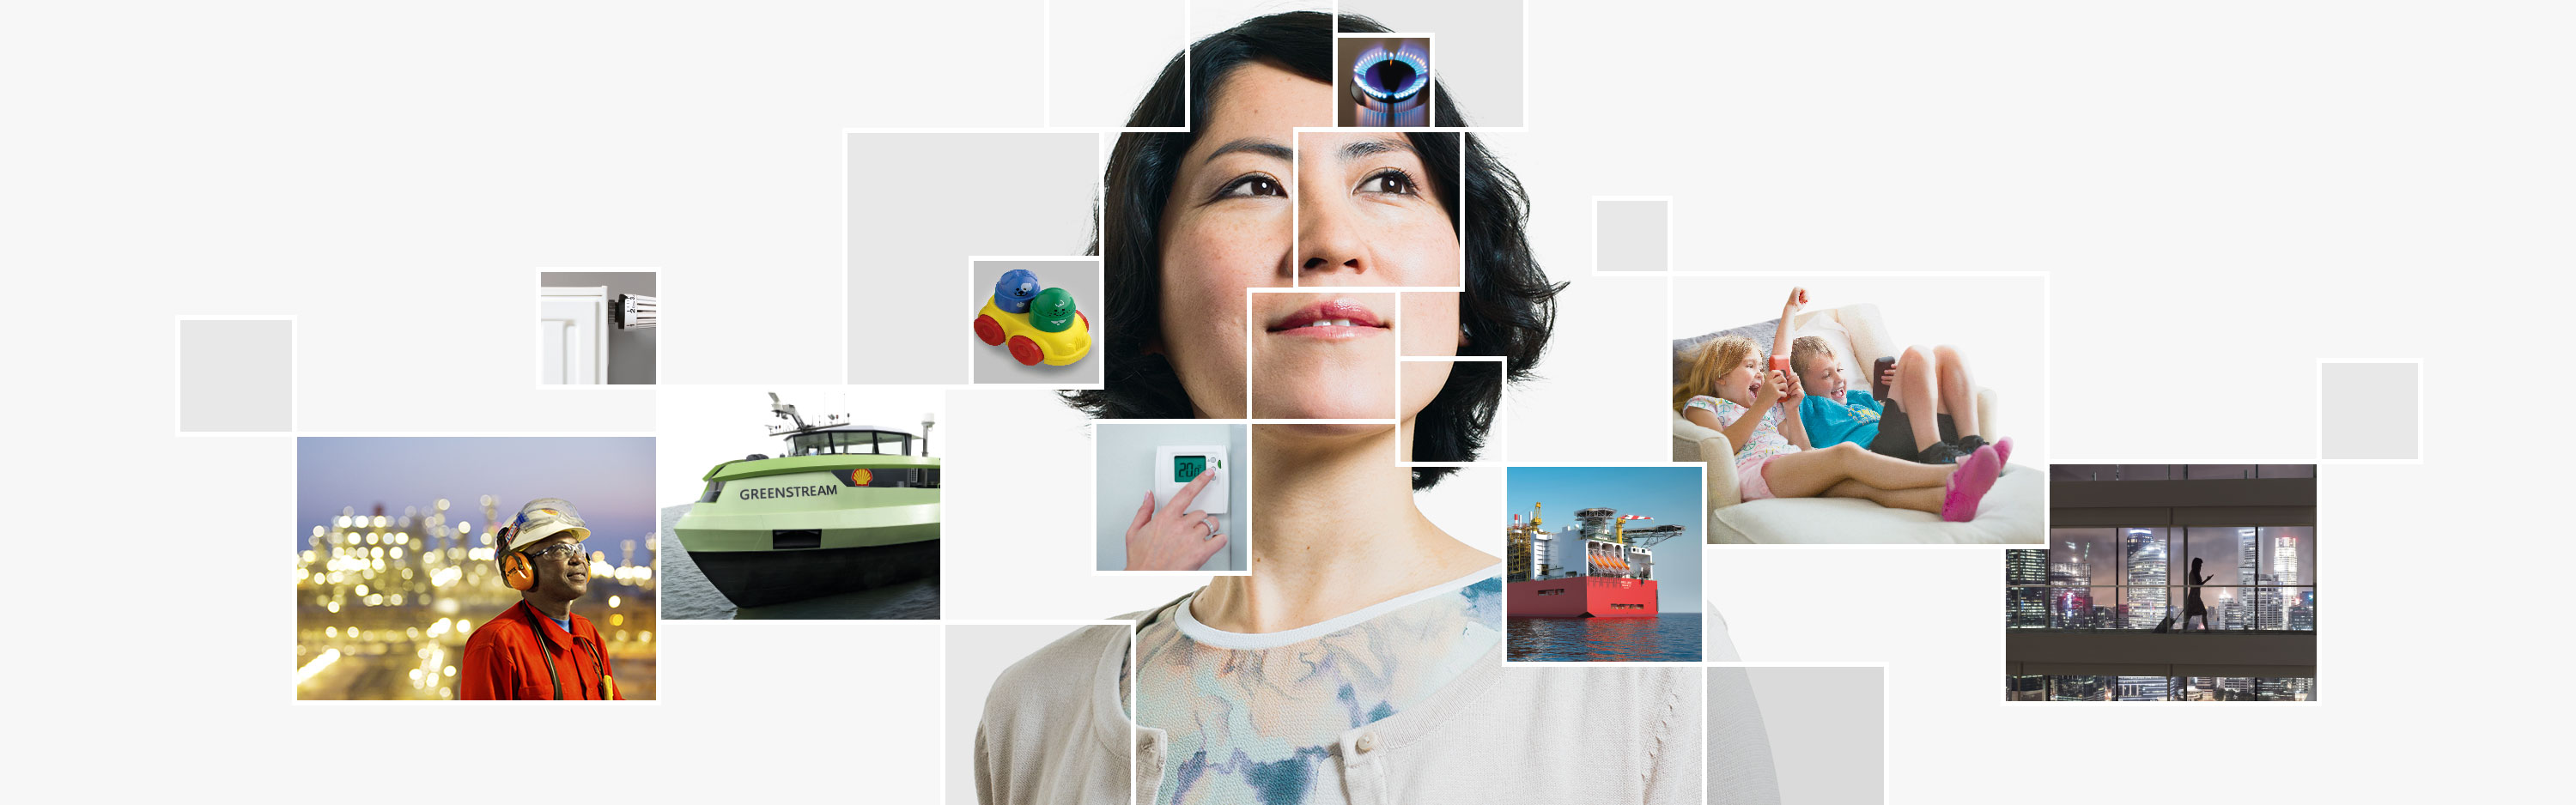 Shell Annual Report 2015